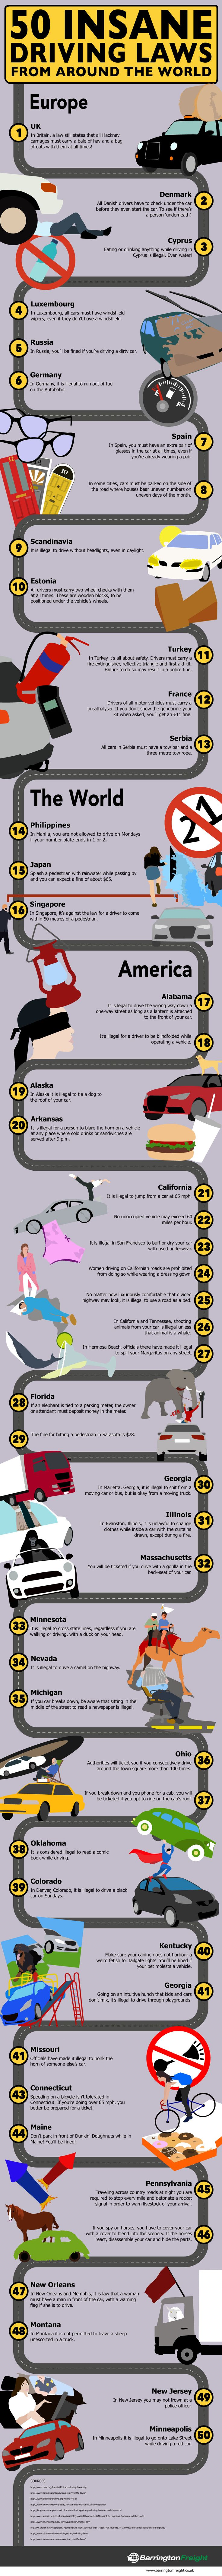 50 Insane Driving Laws From Around The World. God some of these laws are stupid